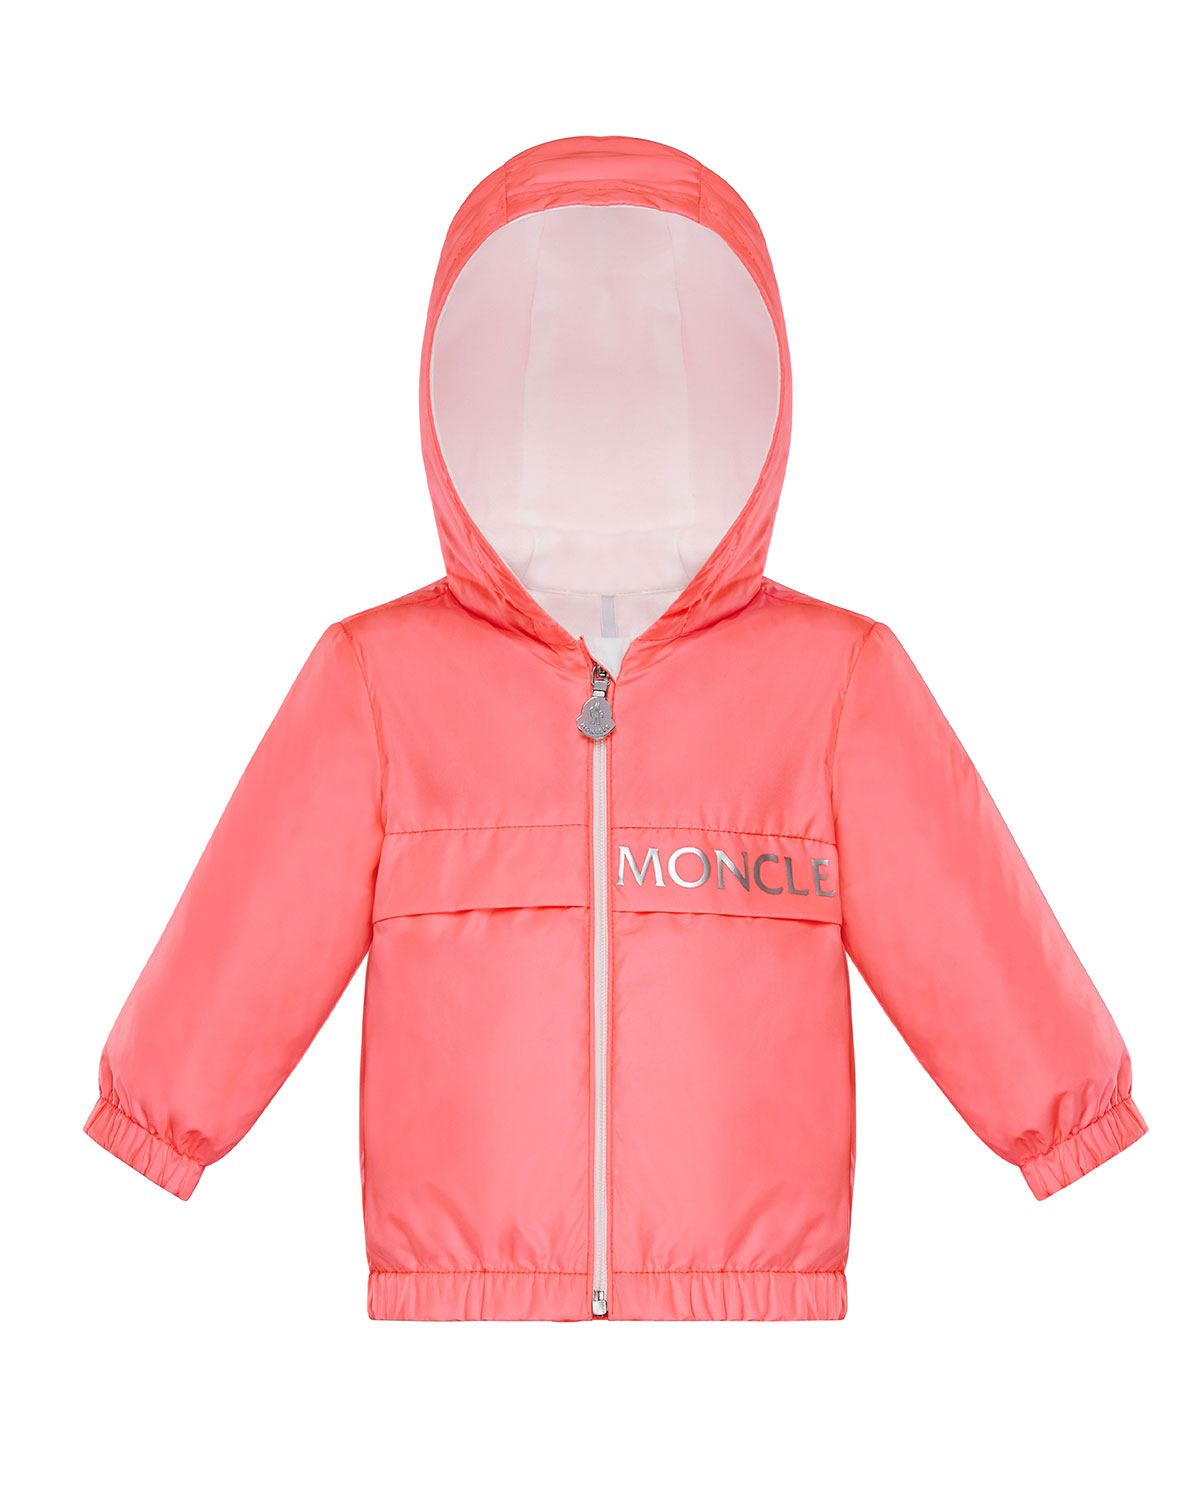 Moncler BOY'S ADMETA HOODED LOGO ZIP-UP JACKET